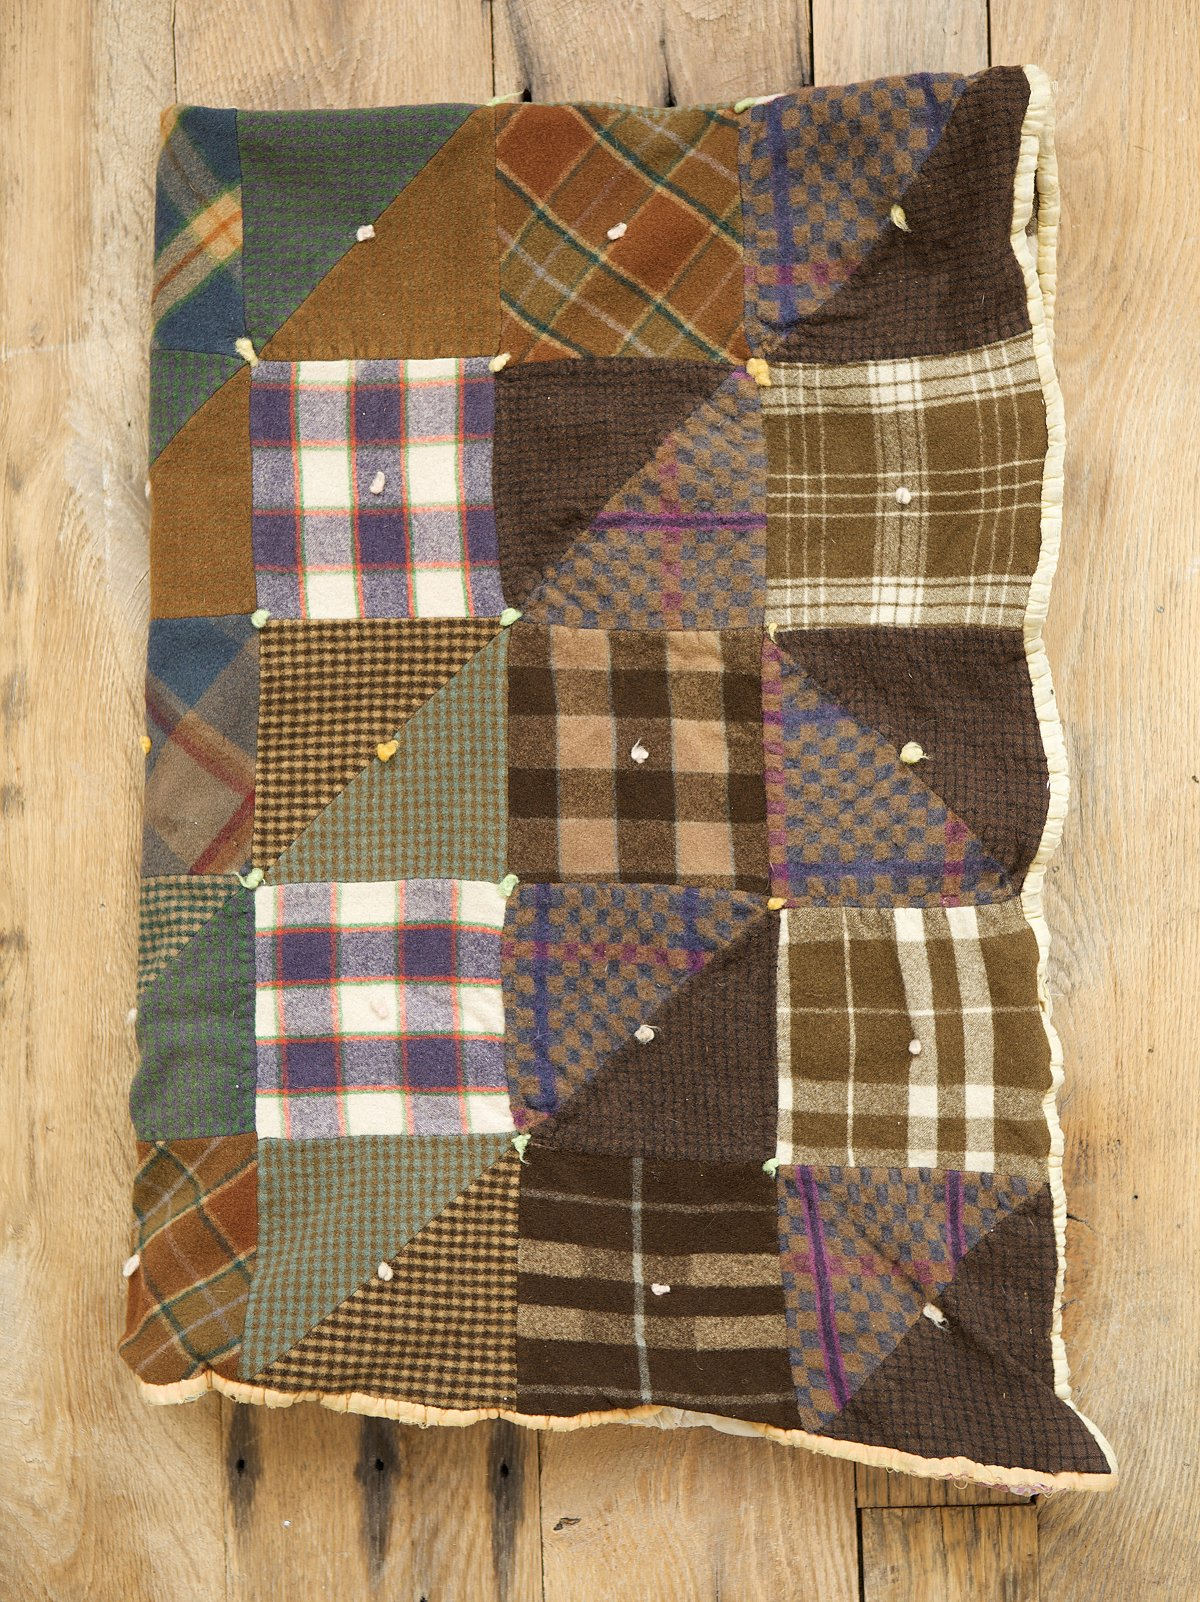 Vintage Homemade Patchwork Wool Quilt